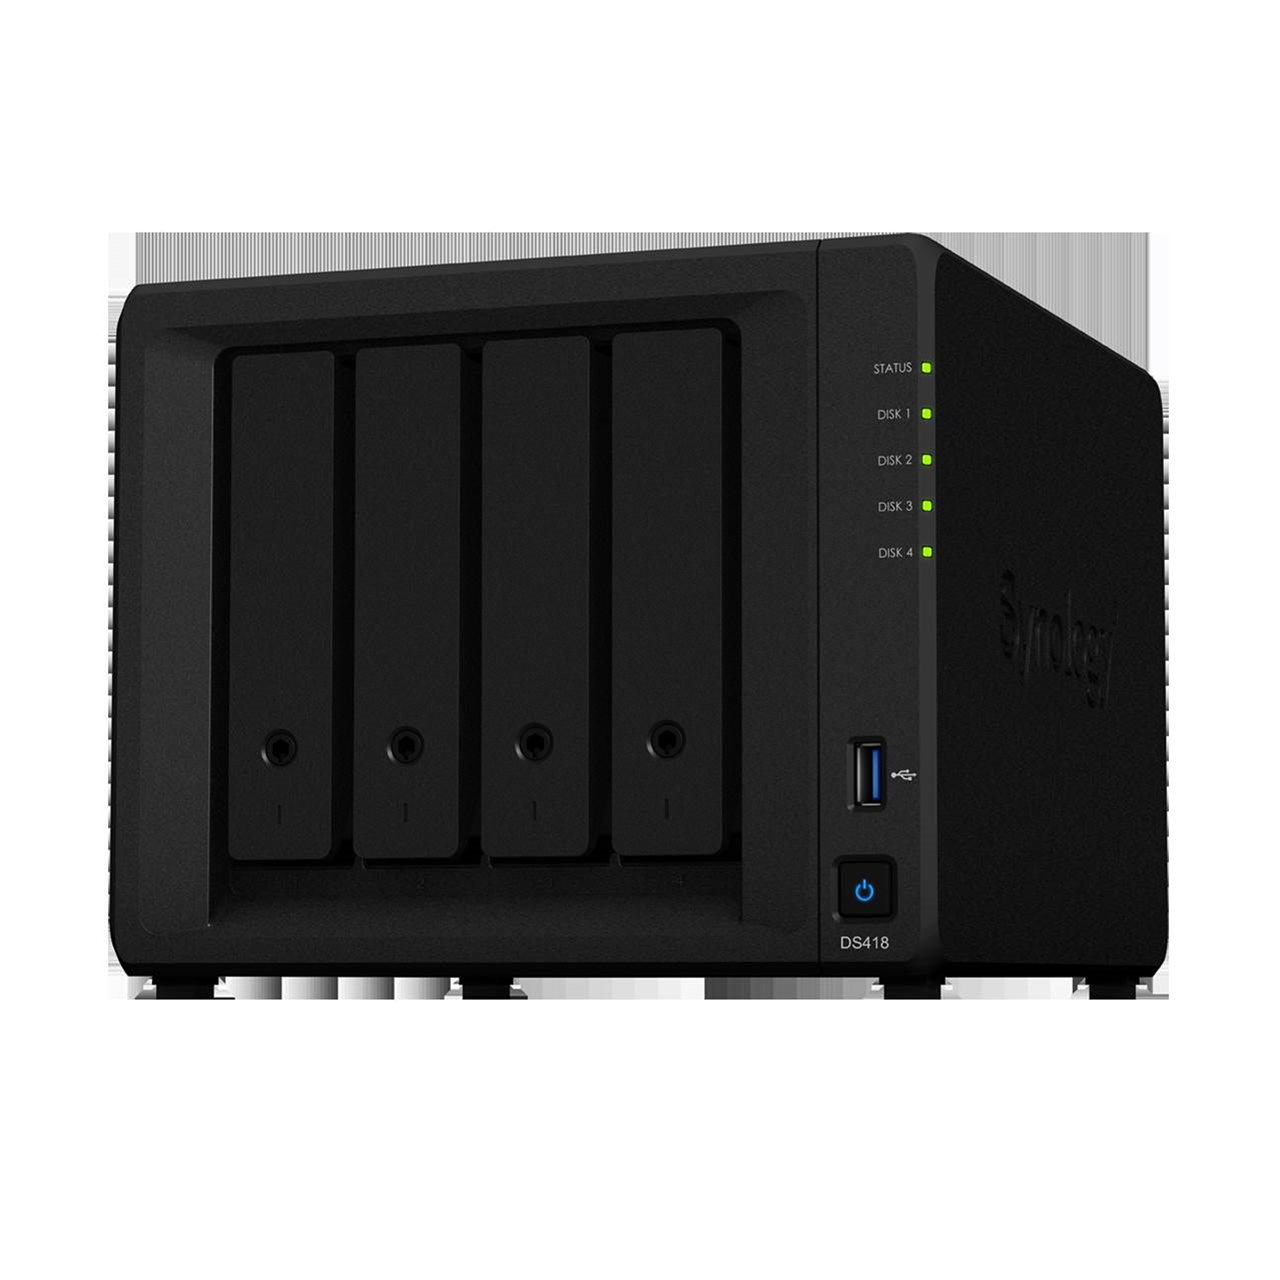 Synology announces new NAS devices, software features